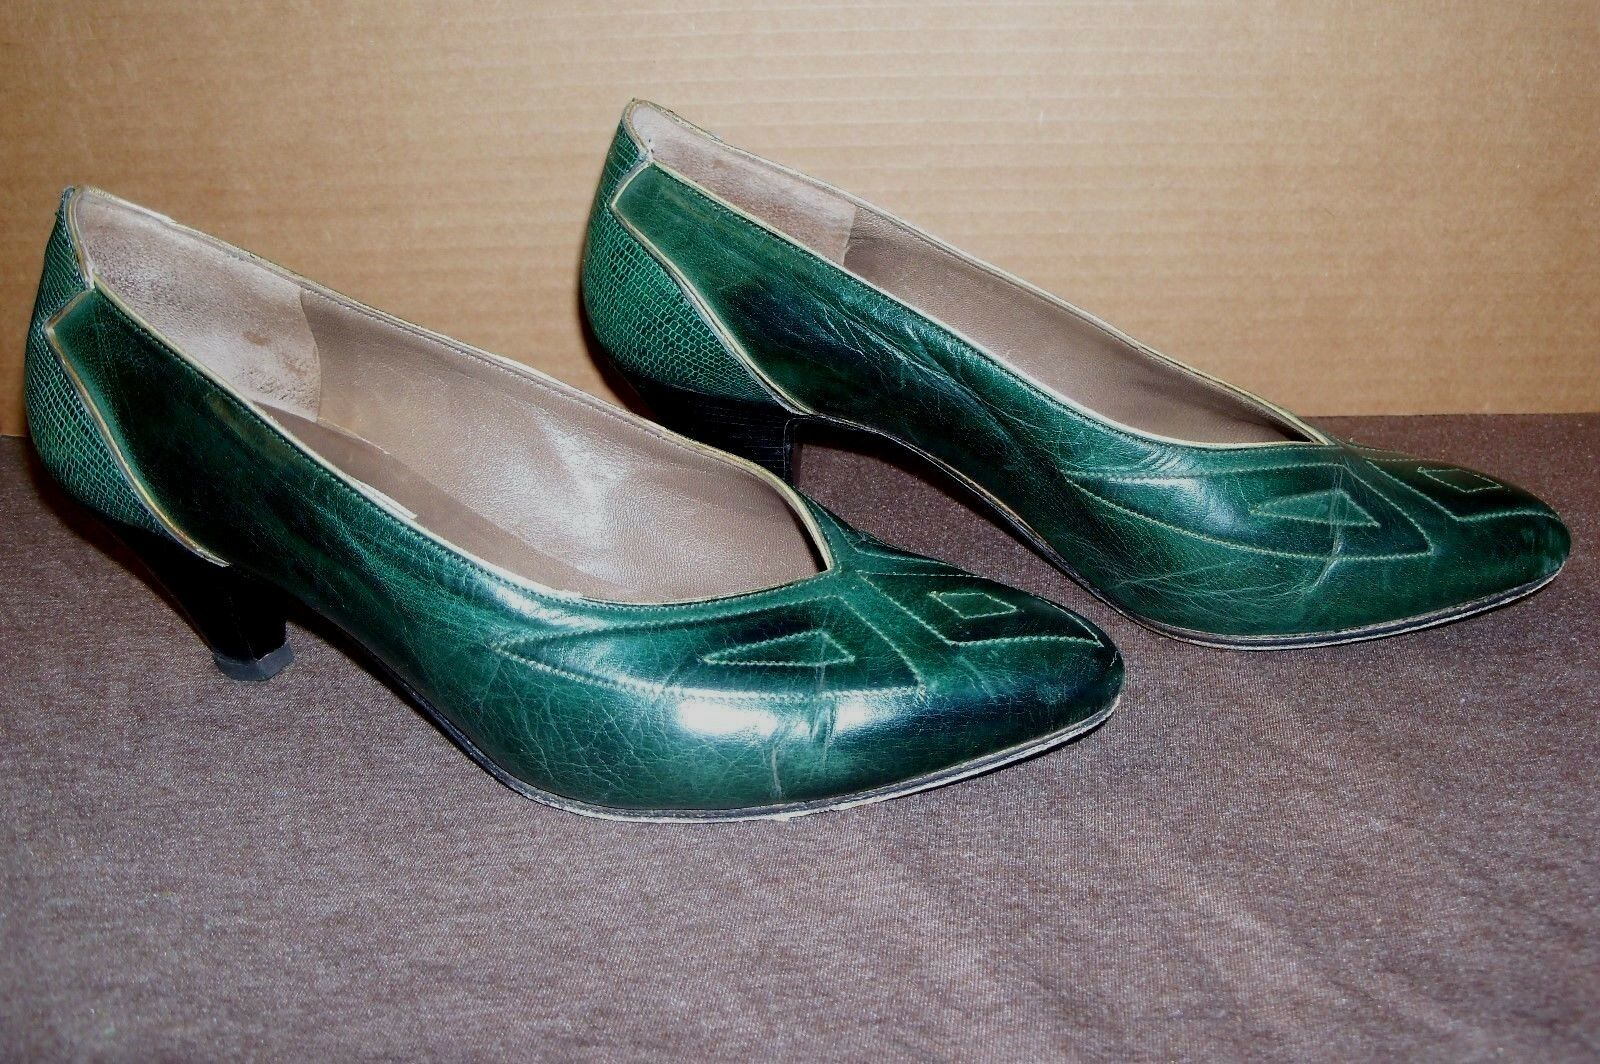 ea5a62ff0a ... ITALIAN LEATHER JACOPO PADOVA PADOVA PADOVA CLASSIC PUMPS SZ 6 (36.5)  EMERALD GREEN STITCHING ...